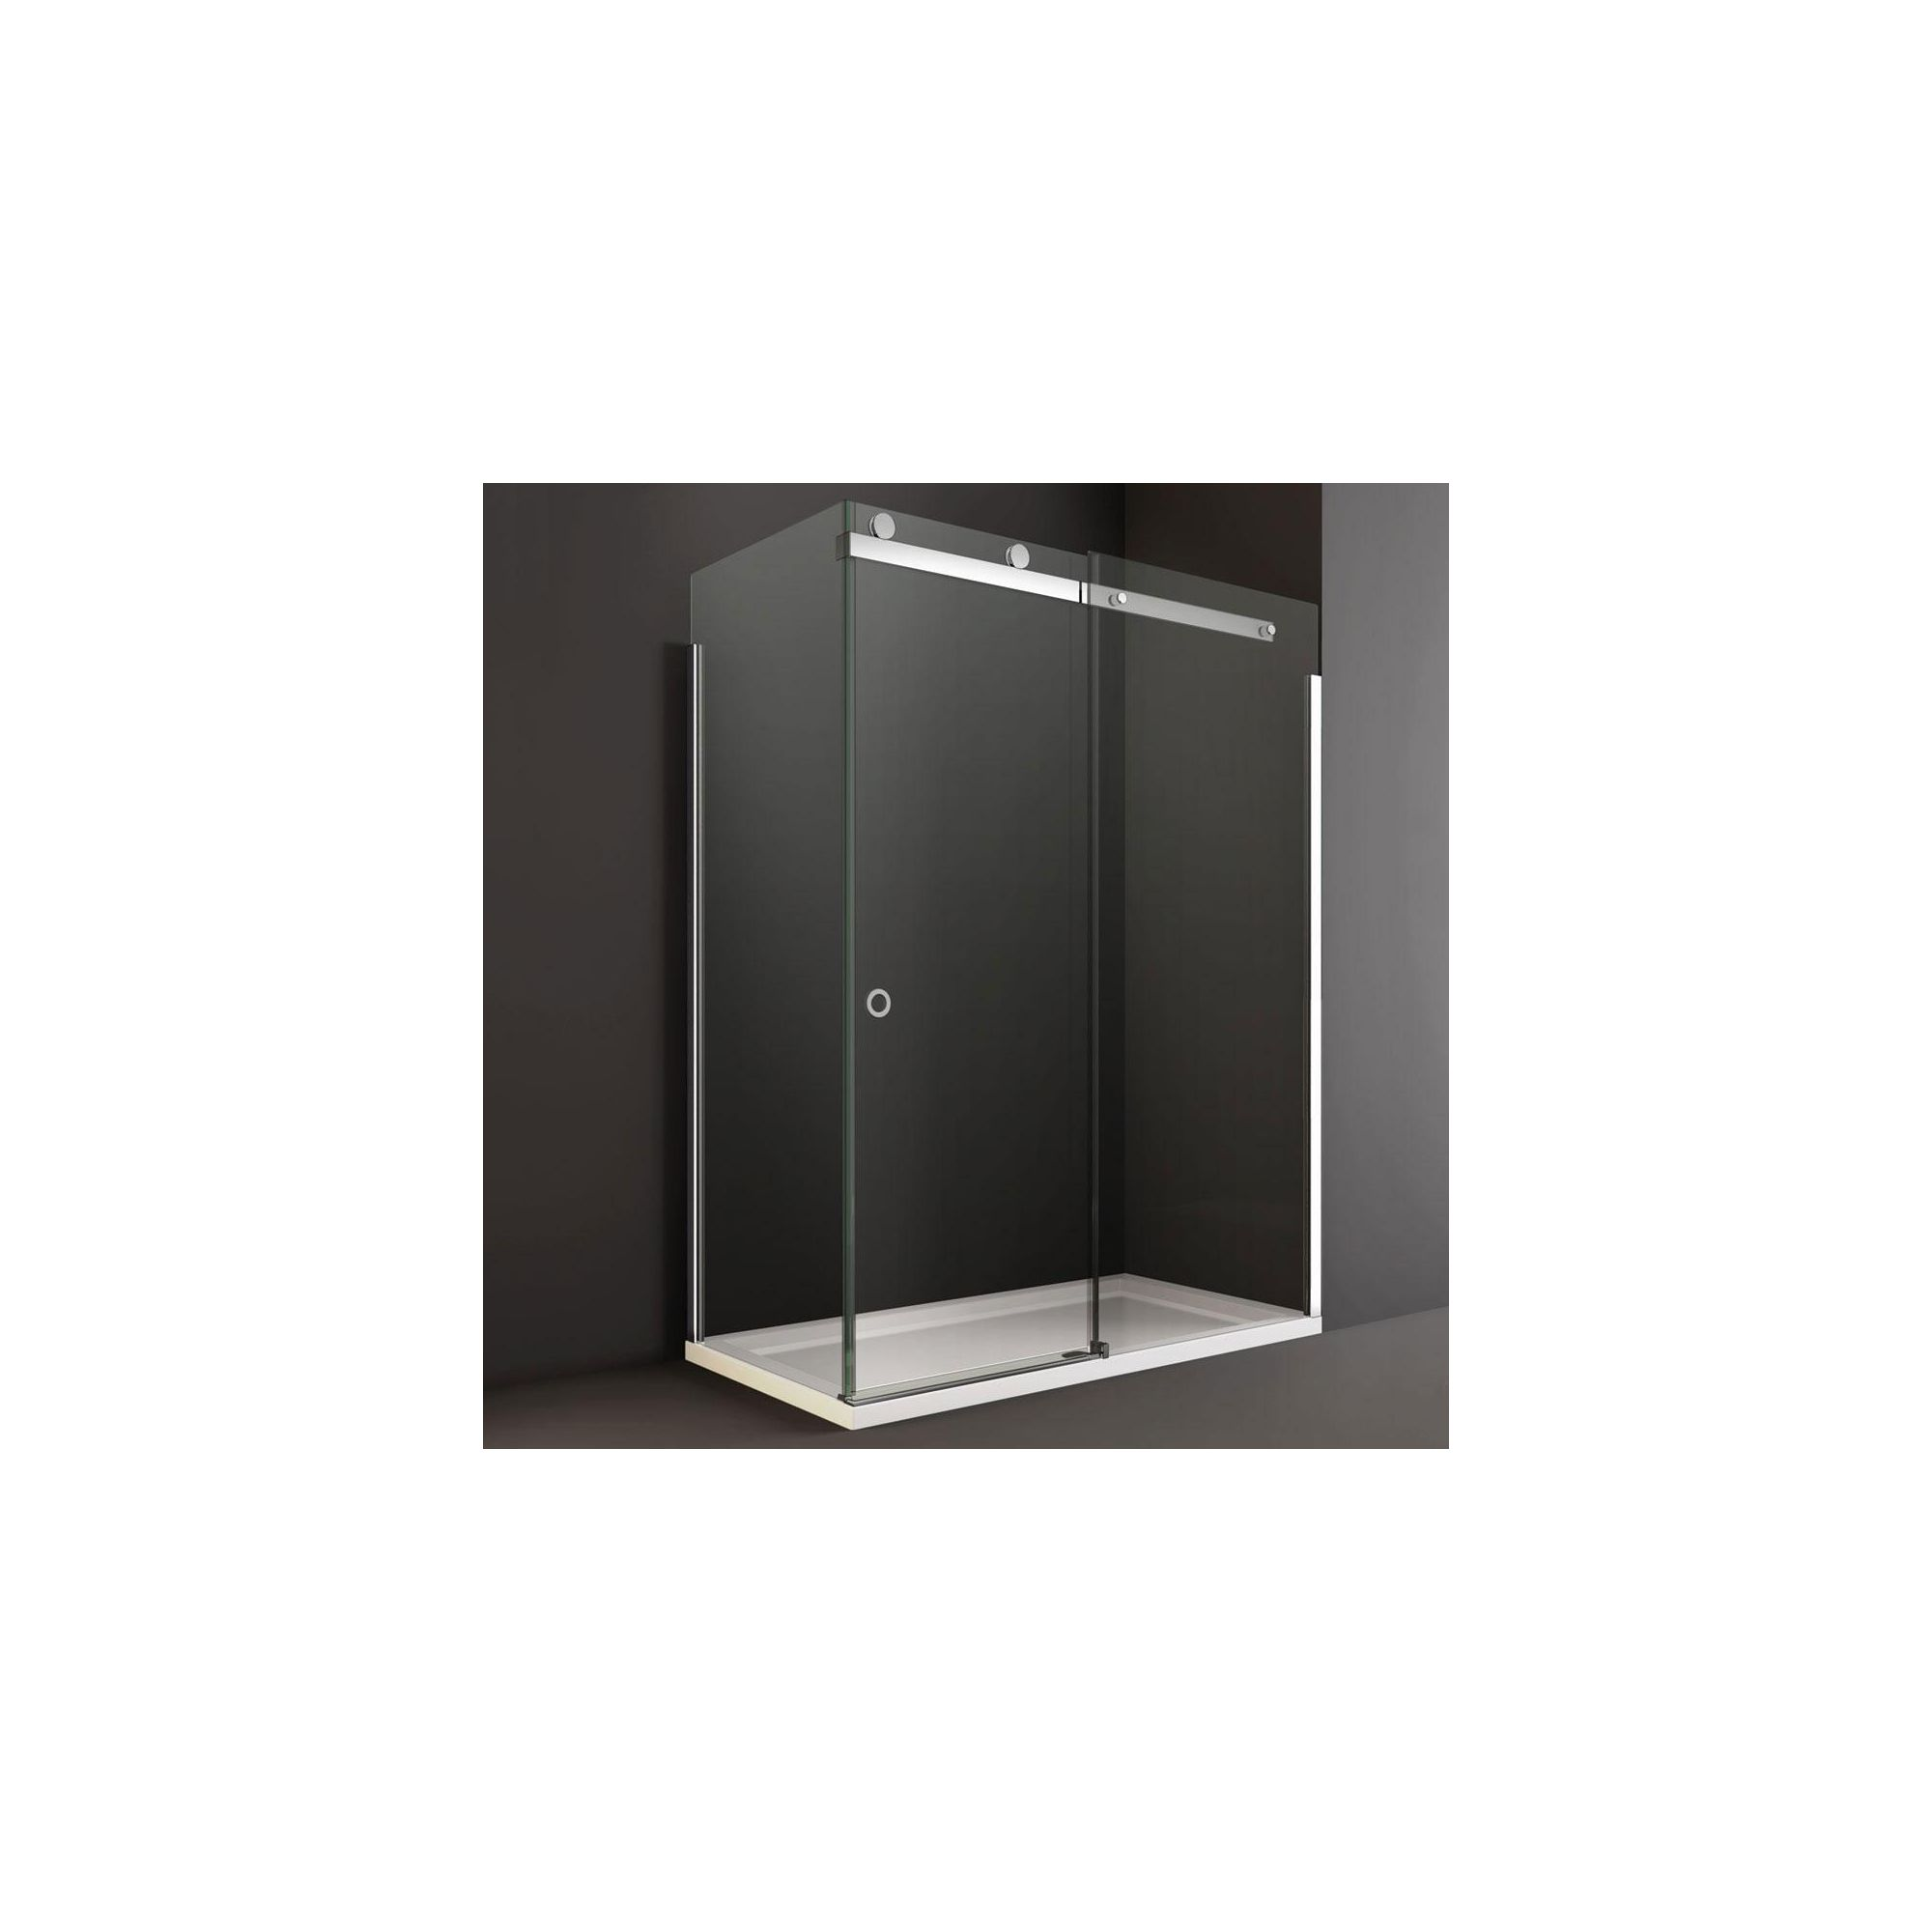 Merlyn Series 10 Sliding Shower Door, 1400mm Wide, 10mm Clear Glass, Right Handed at Tesco Direct